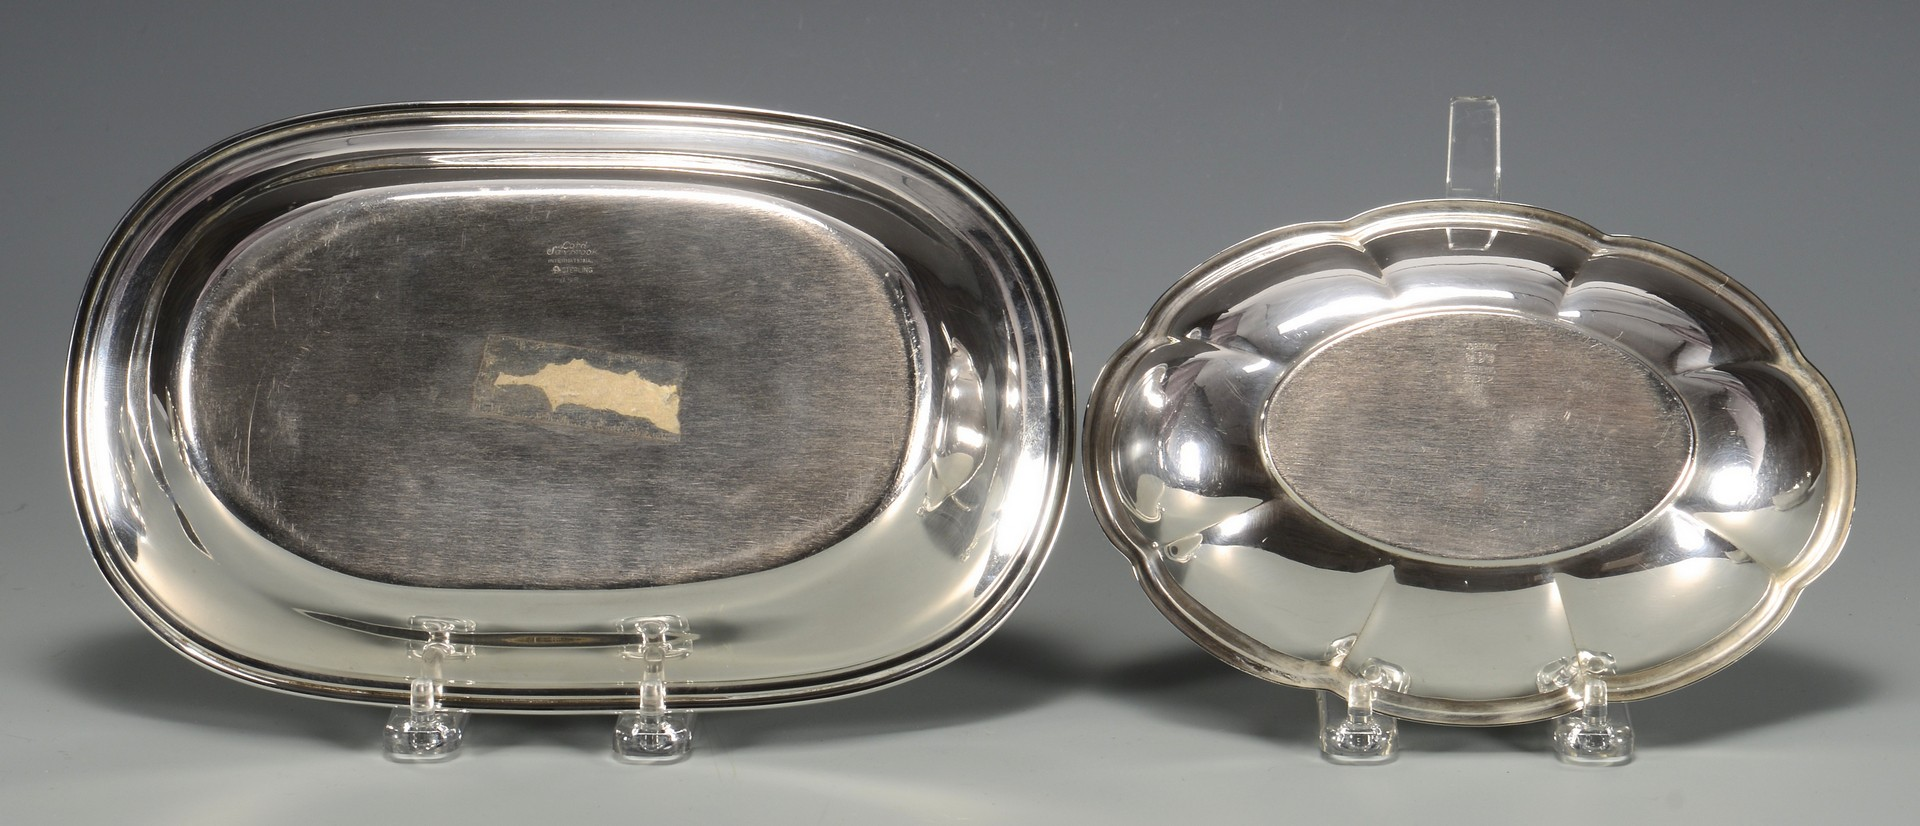 Lot 670: 5 pcs Sterling Hollowware inc. Revere Bowls